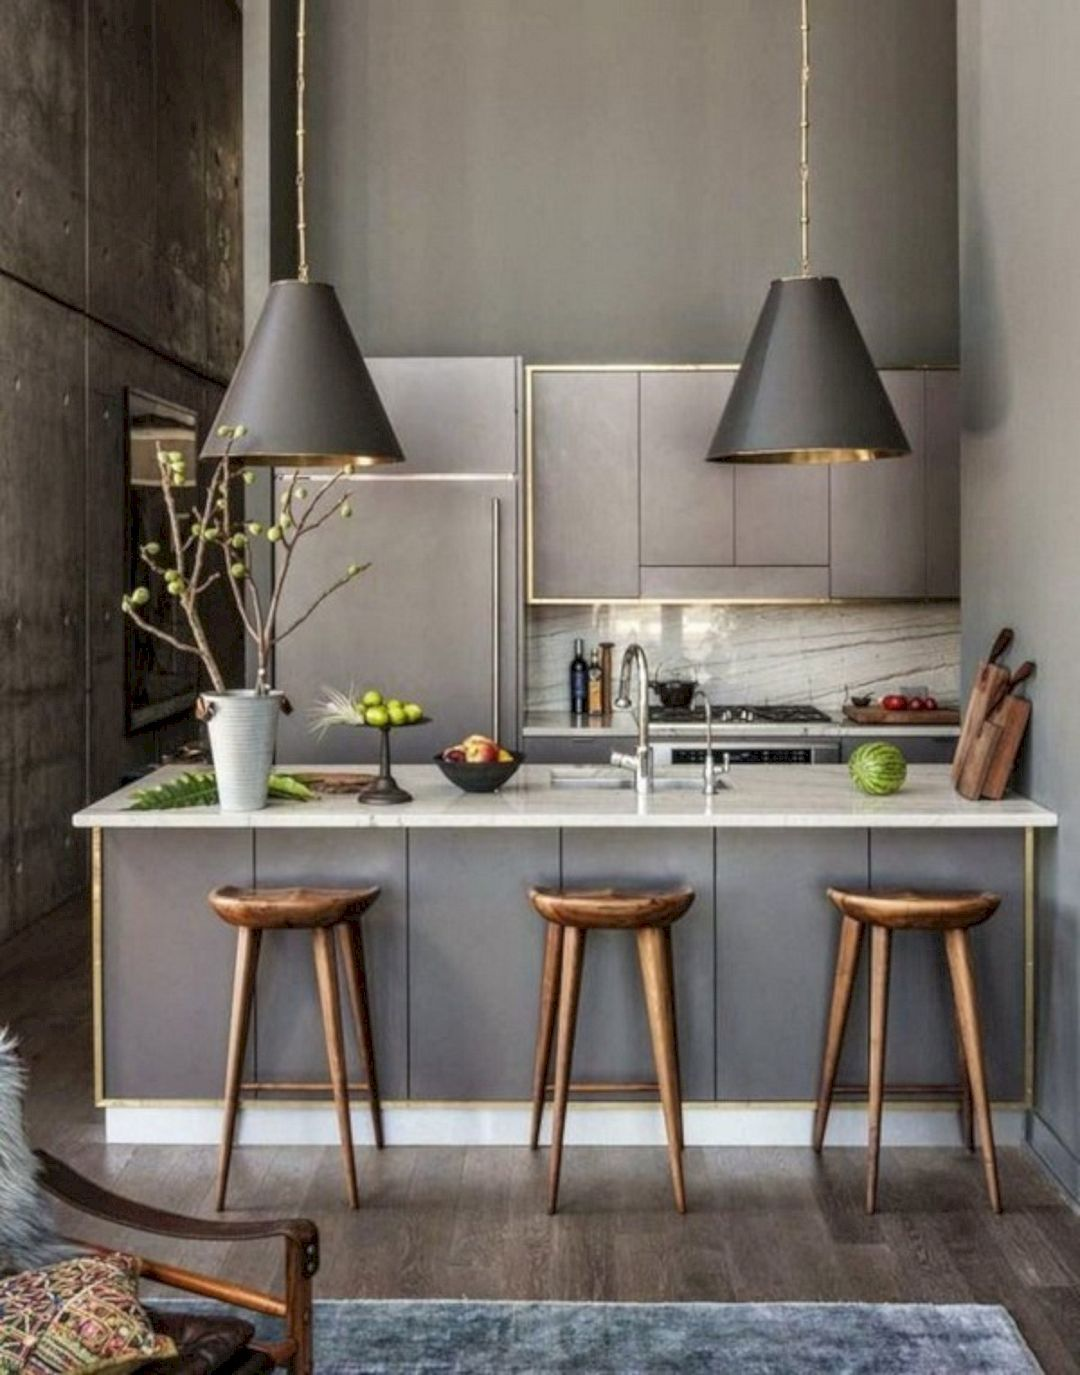 Amazing Small Kitchen Ideas For Small Space 121  Tiny Spaces Awesome Small Kitchen Interior Design Inspiration Design